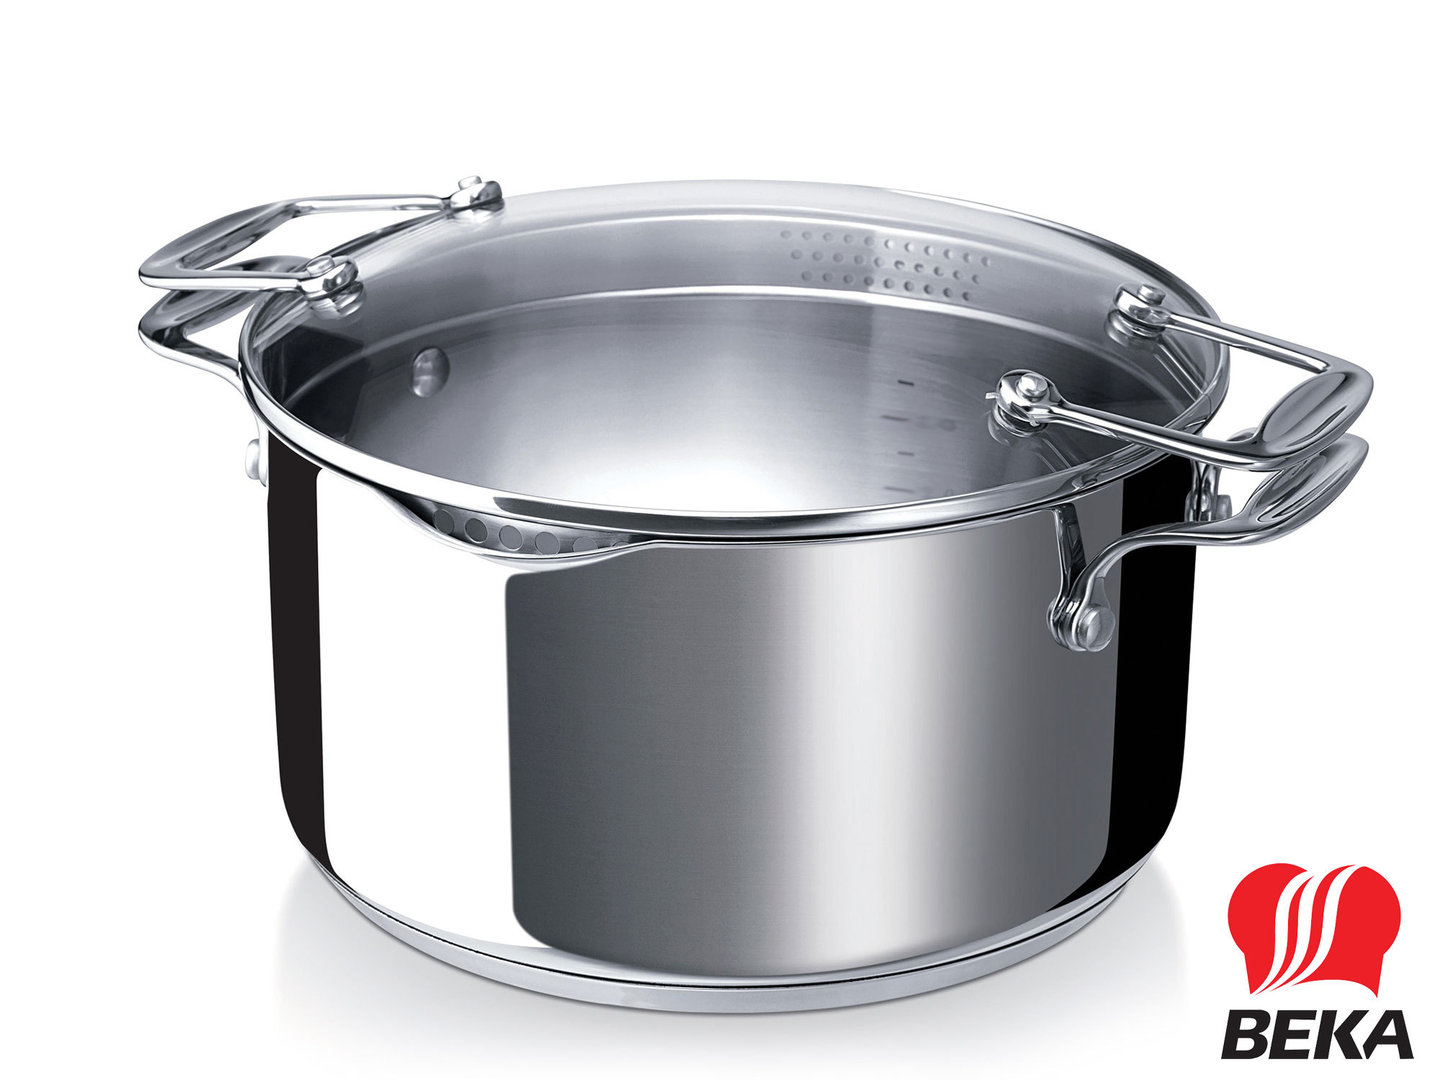 BEKA easy straining casserole CHEF PRATIQUE 20 cm stainless steel induction